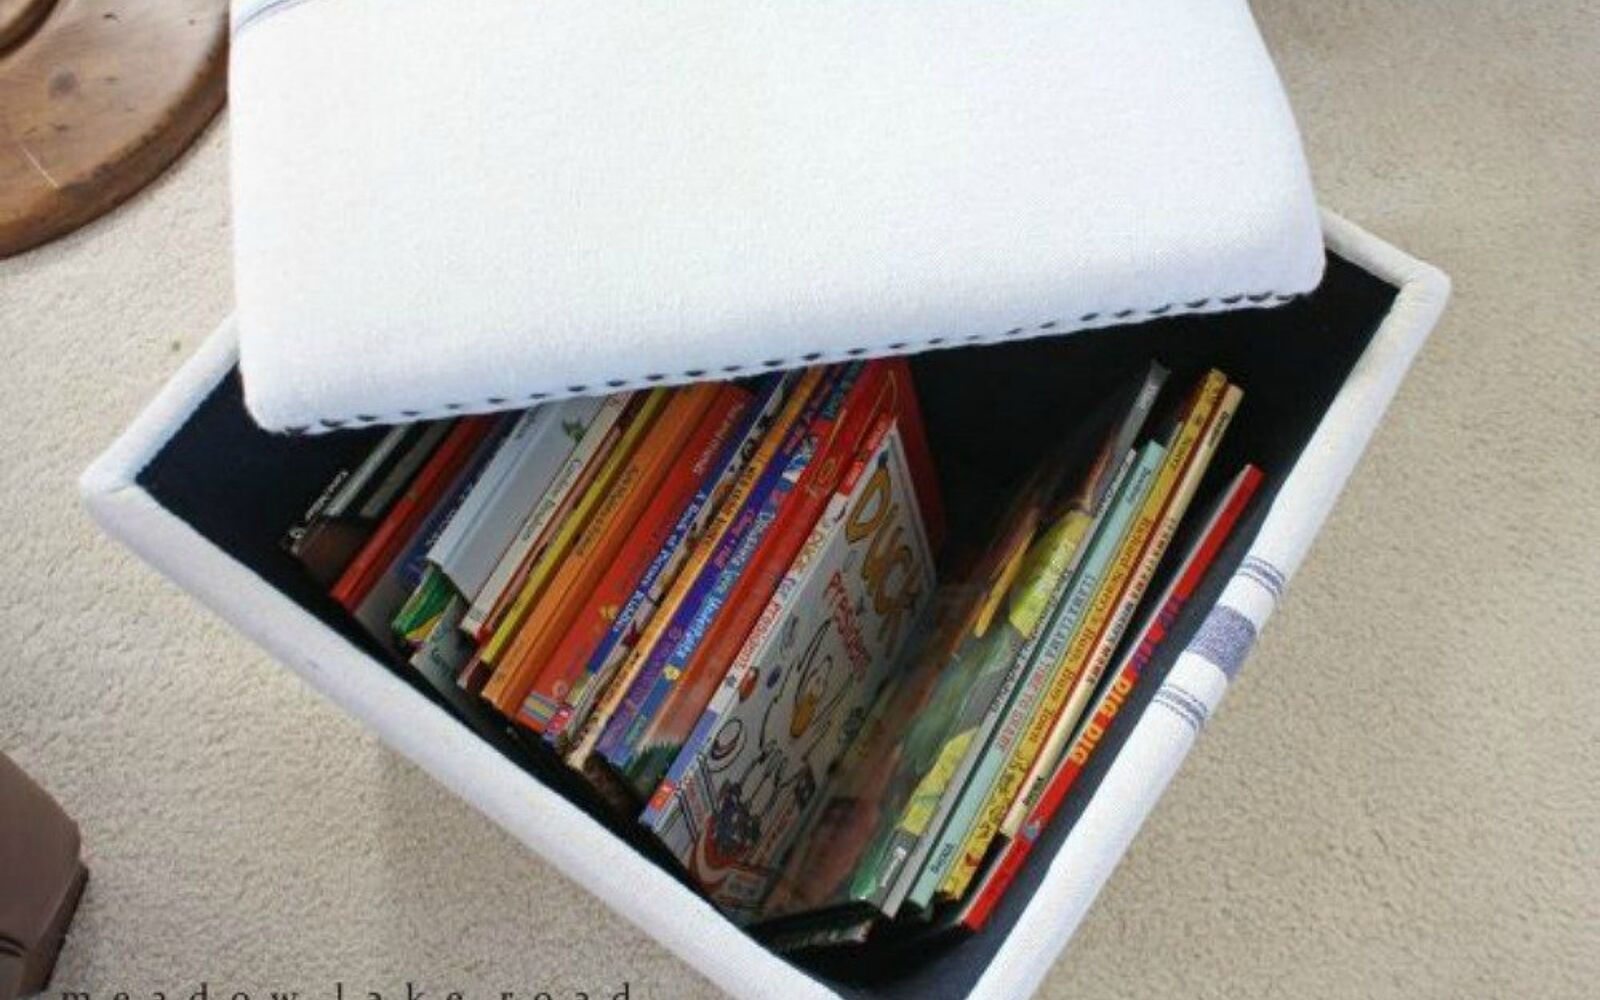 s 11 amazing toy storage ideas from highly organized moms, organizing, storage ideas, Pile books in ottomans